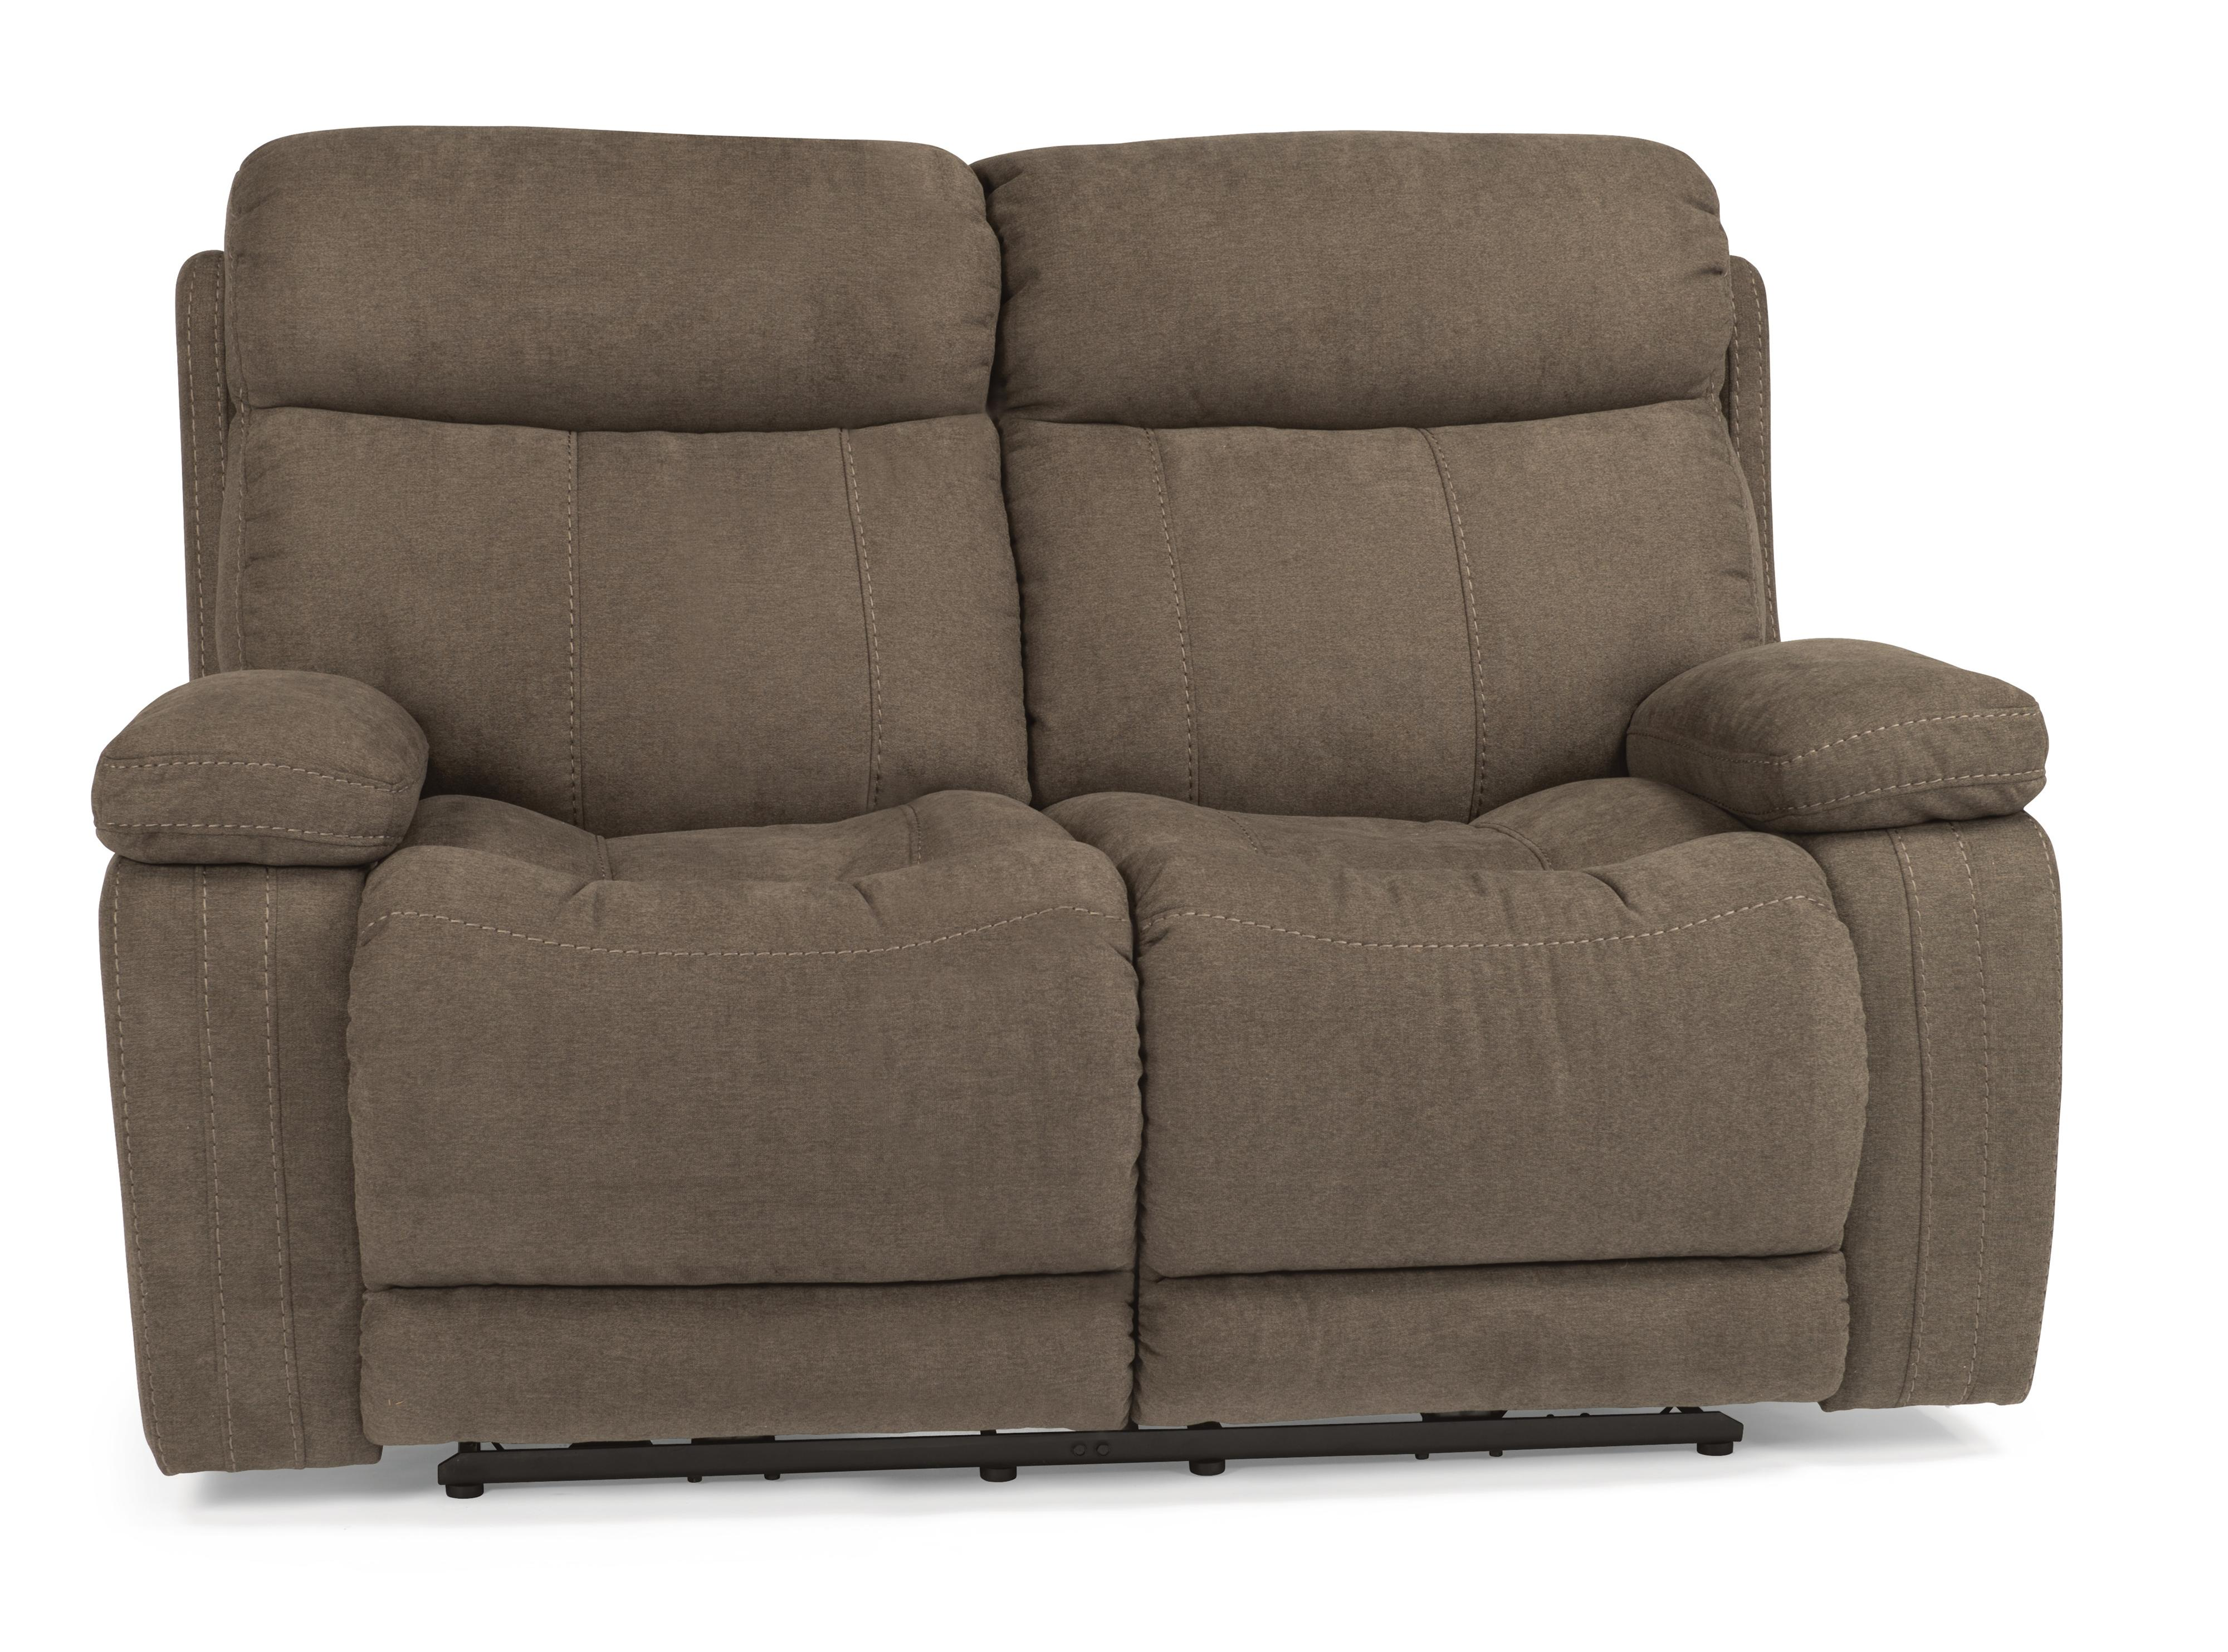 sleeper sets sectional room furniture modern office impressive living cheap fabulous seat loveseat bobs beds sofa love